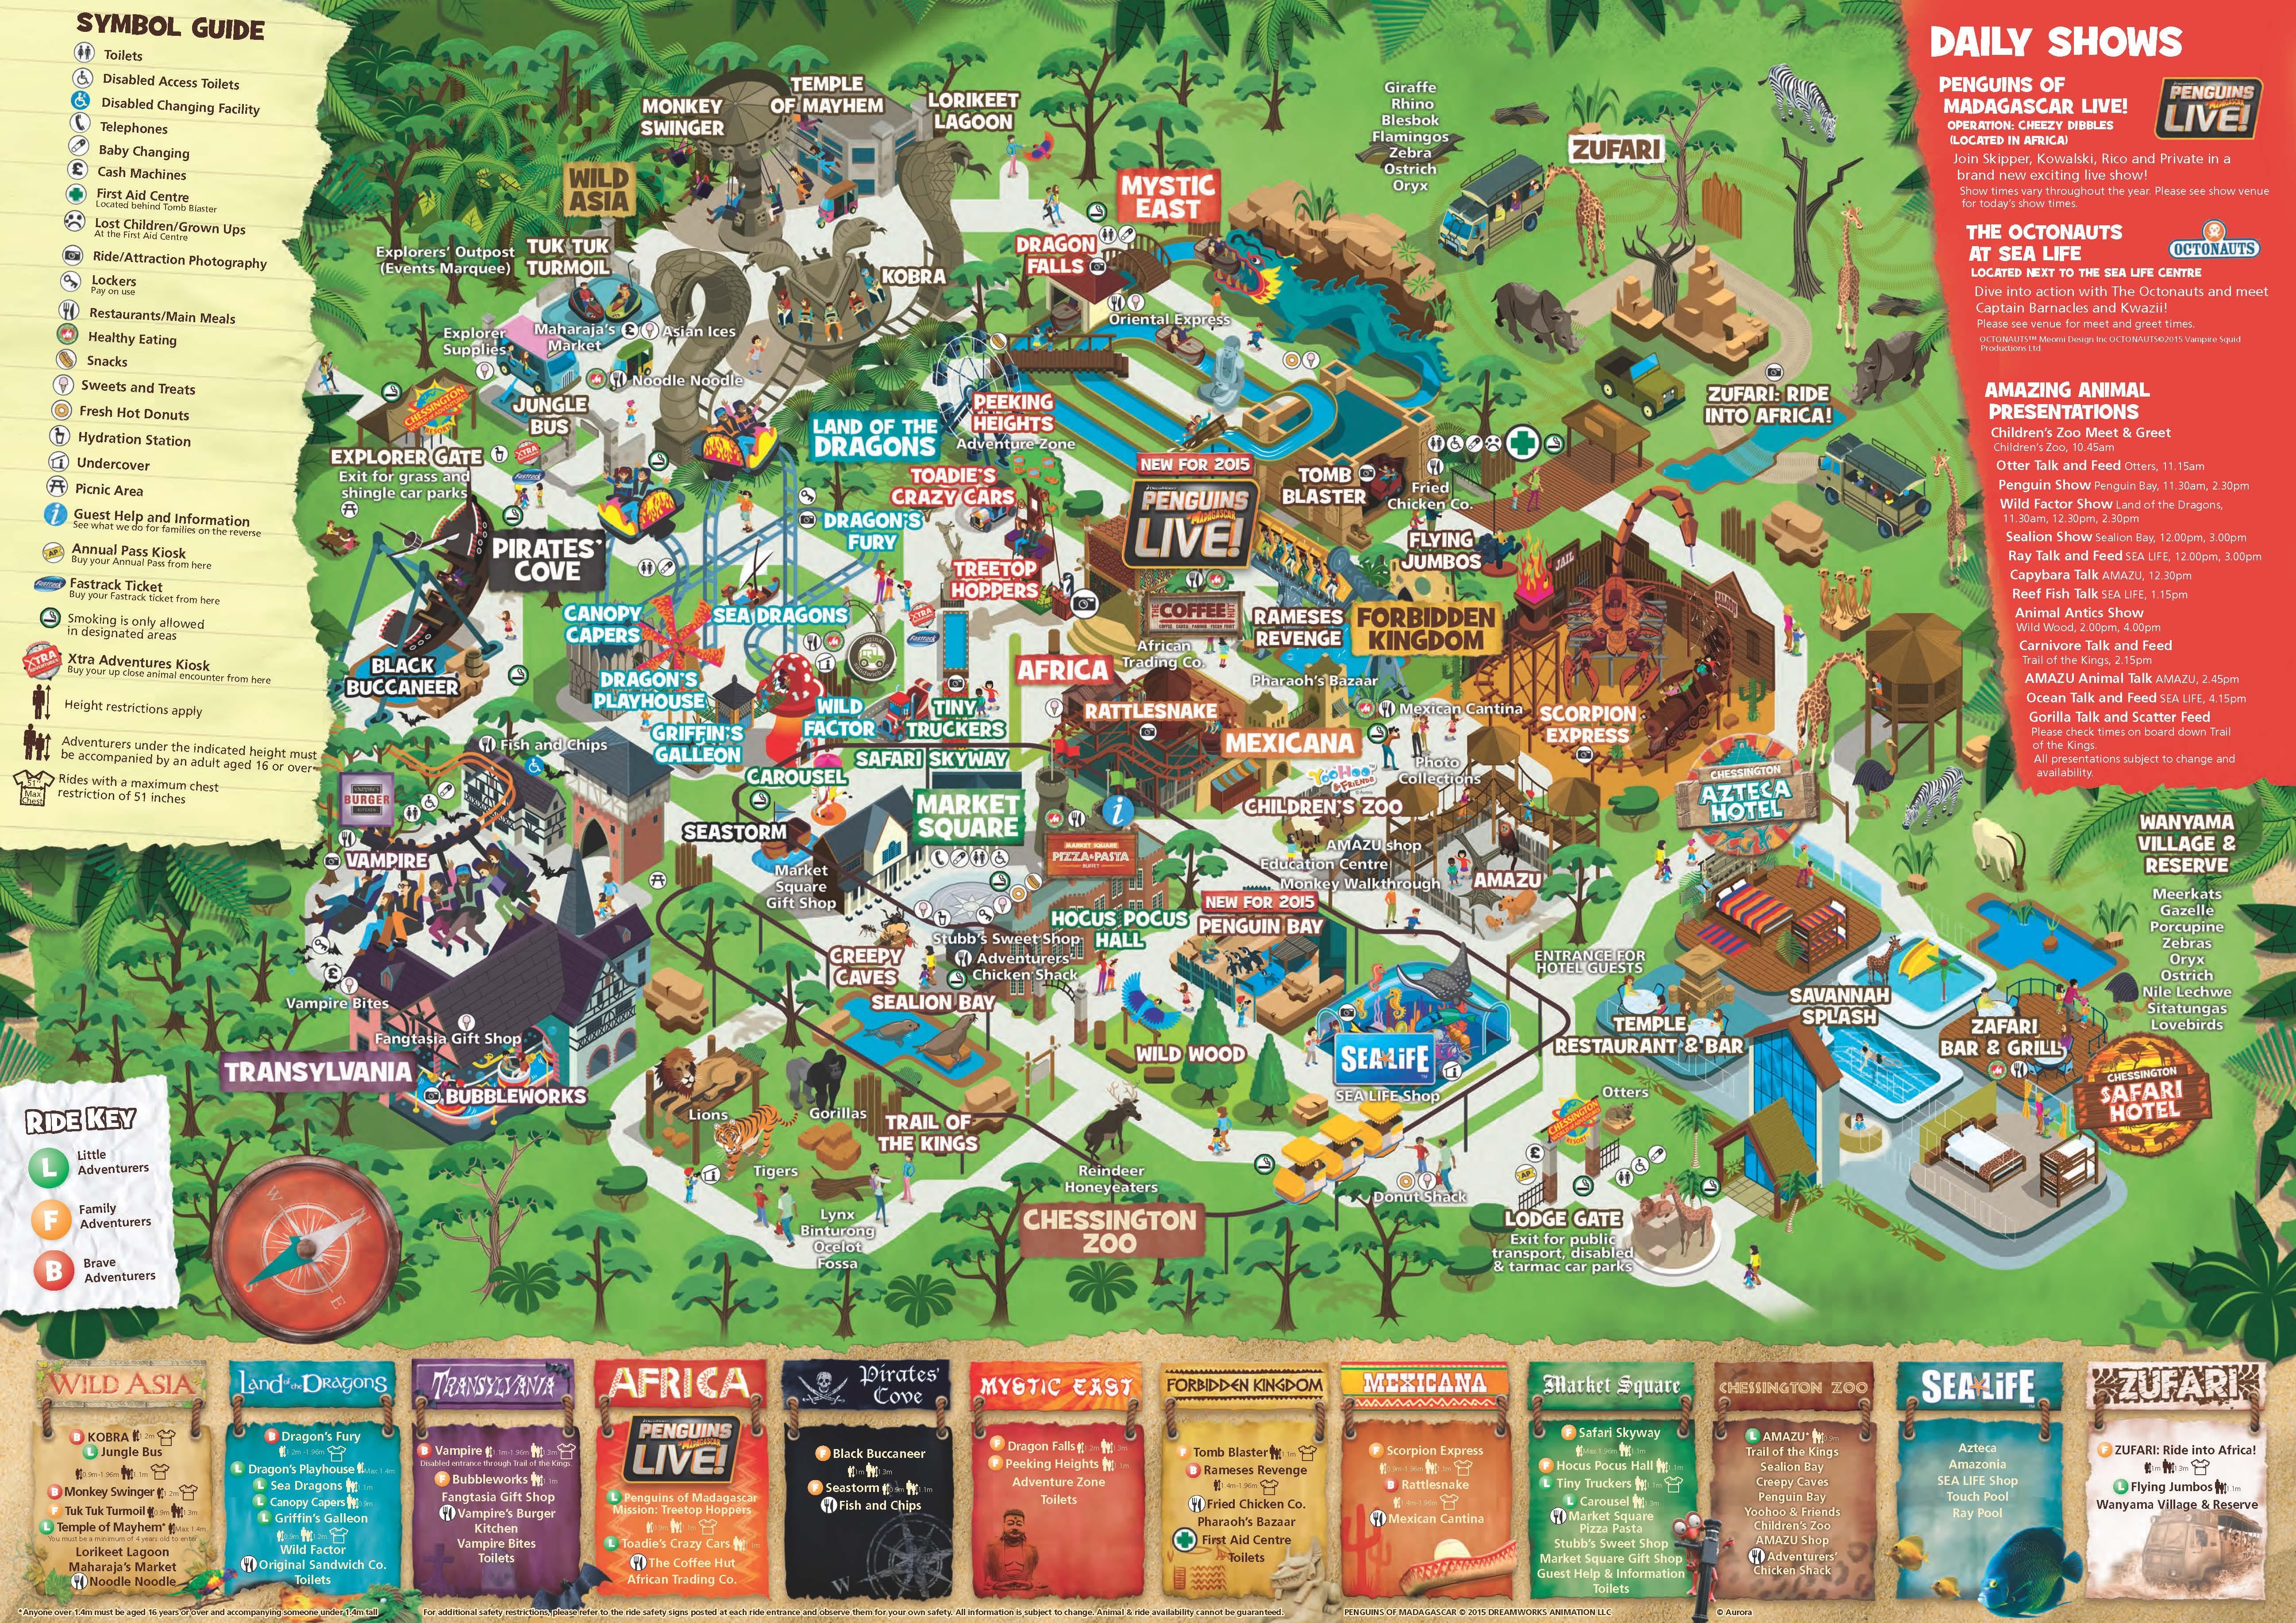 Zoos chessington map 2012 map 2015 gumiabroncs Images